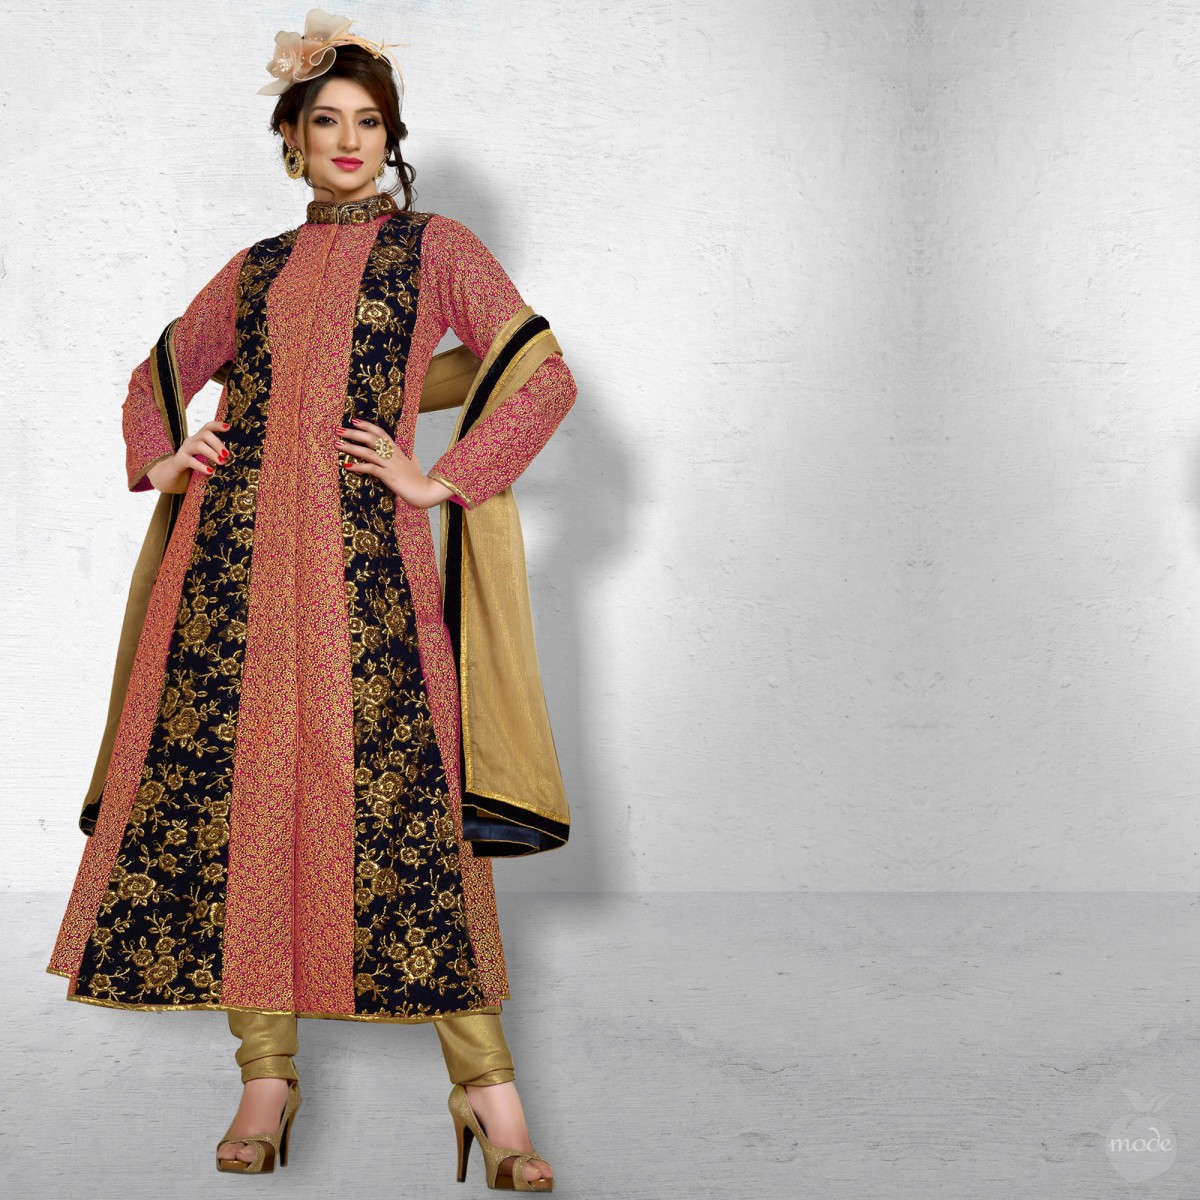 SHERWANI SUITS FOR WOMEN - ETHNIC WEAR IN DELHI